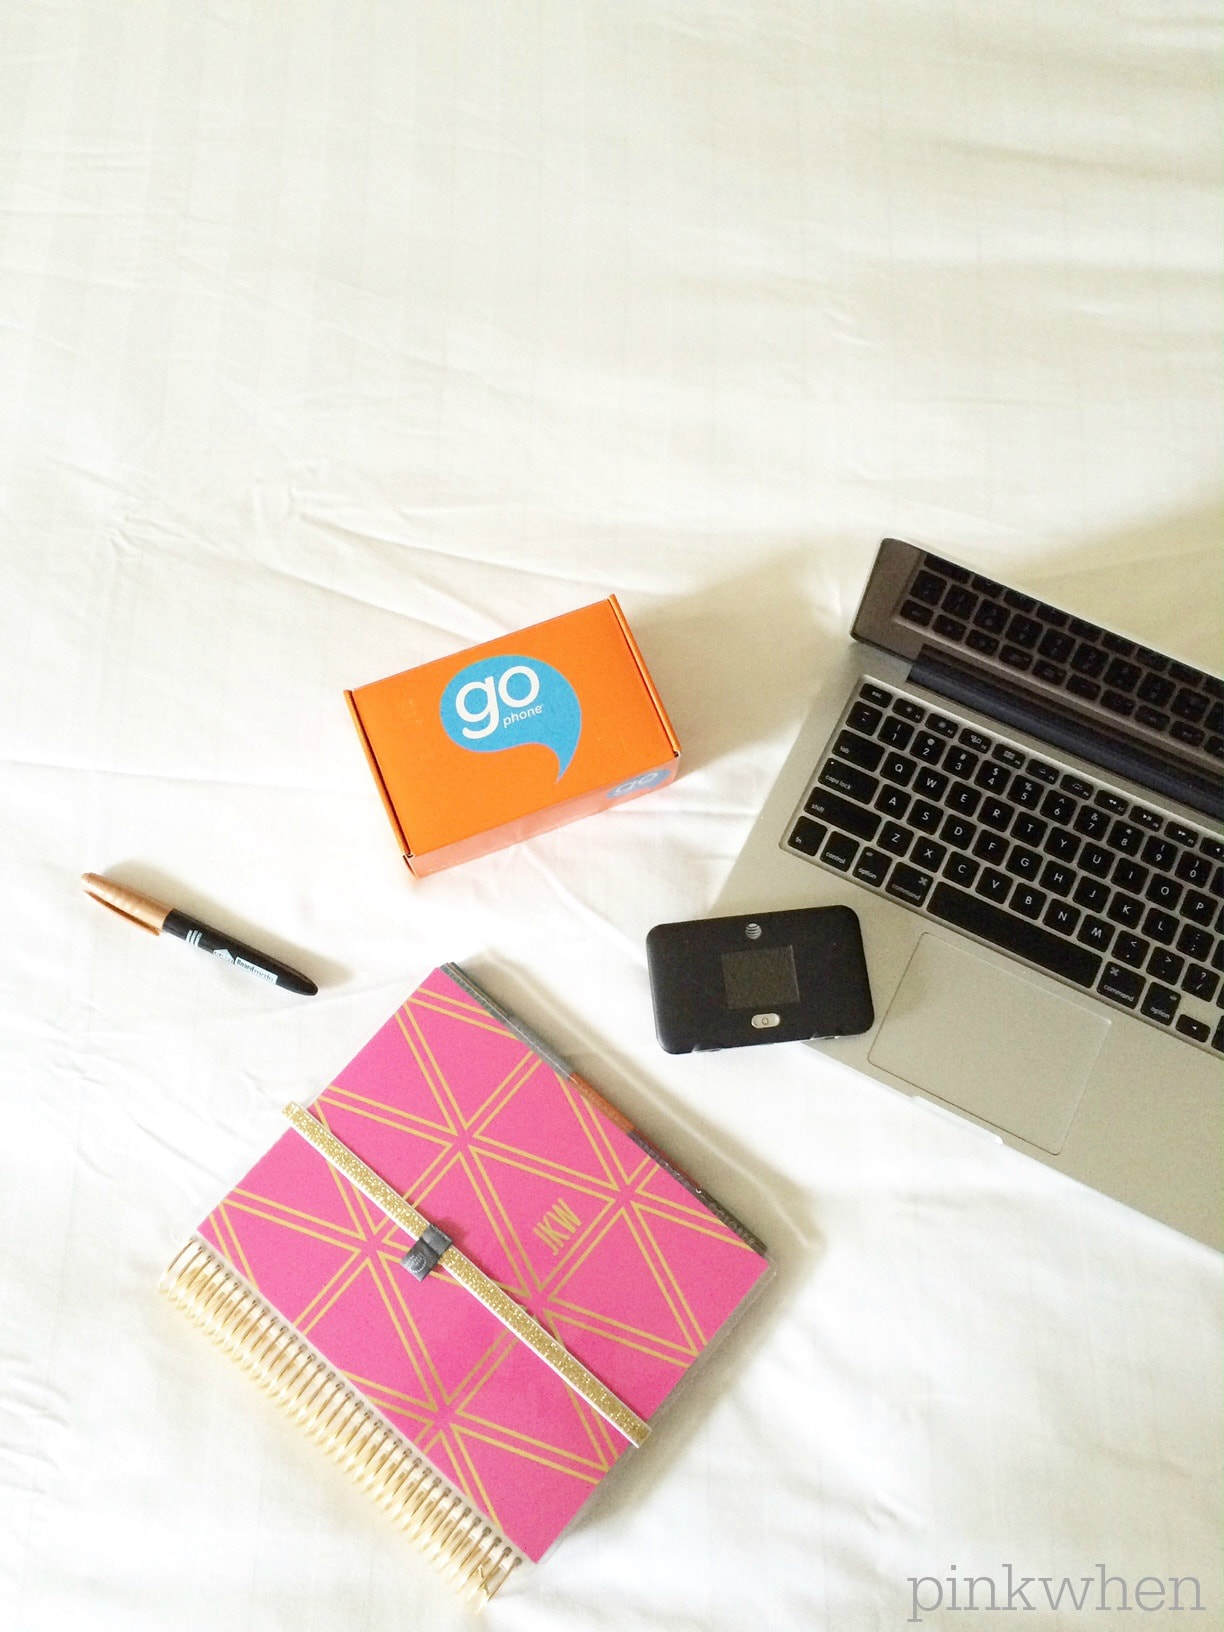 Making Travel Count - Always travel with reliable WiFi!